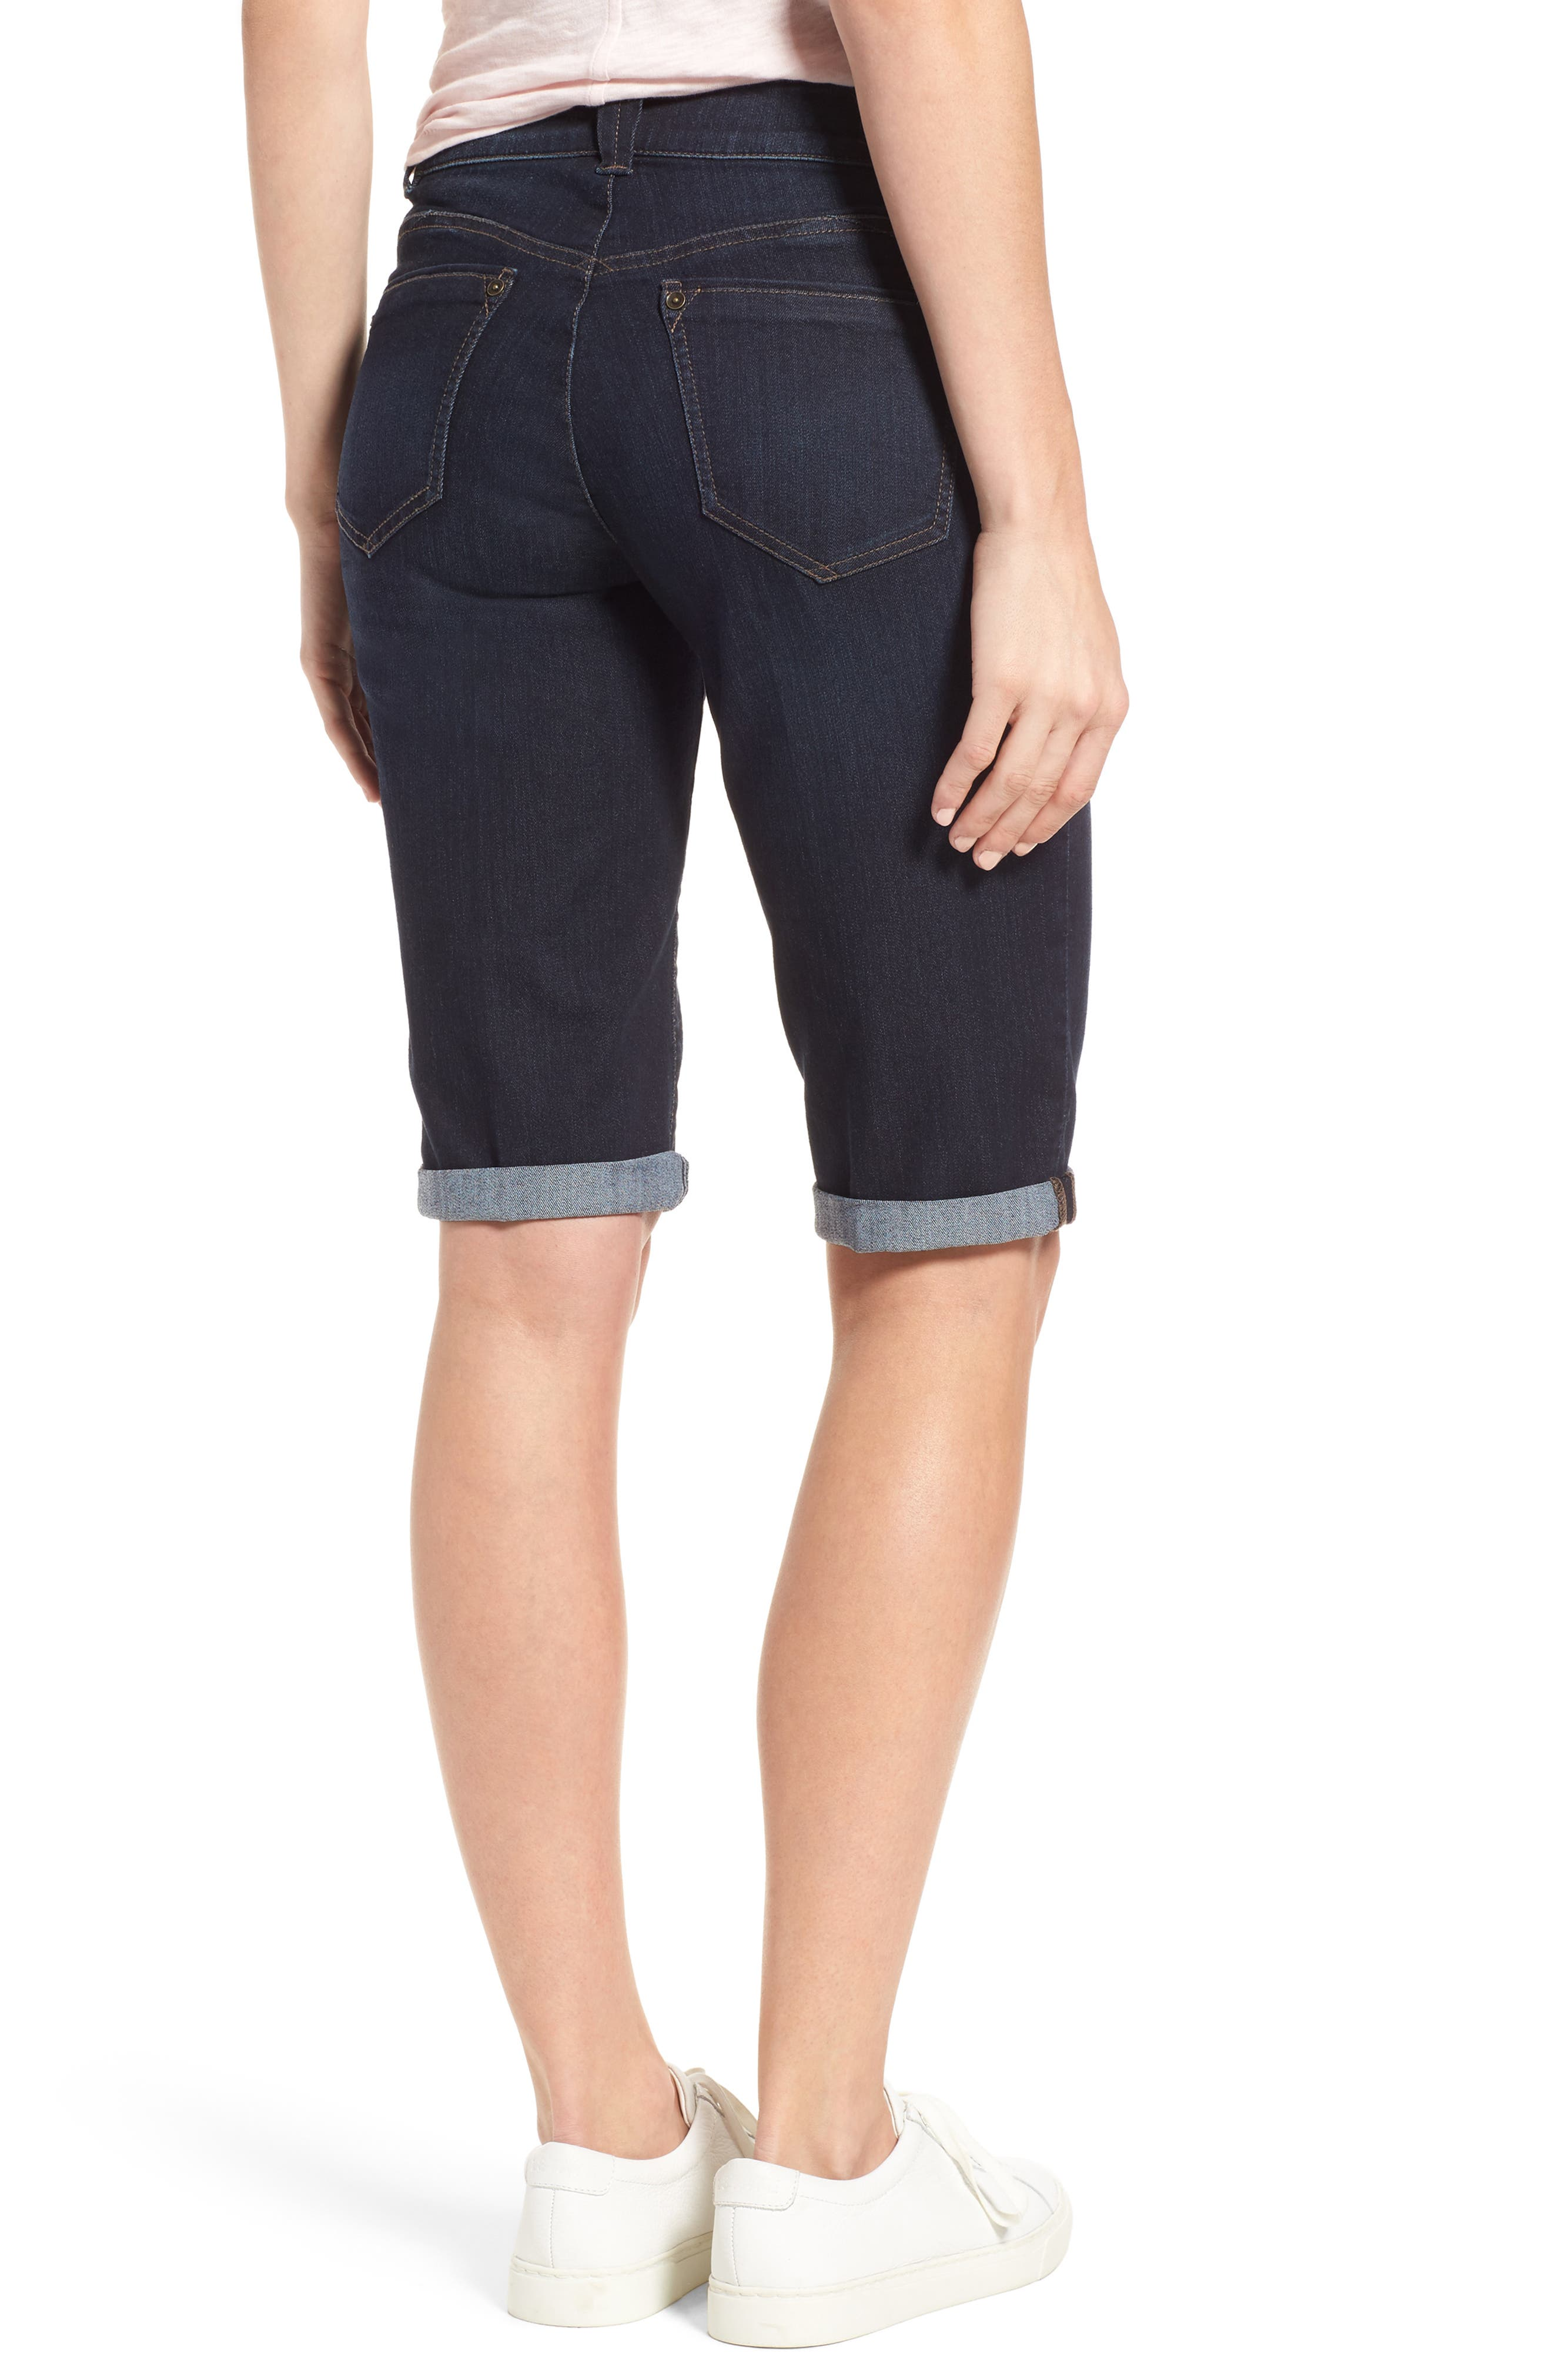 Ab-solution Denim Bermuda Shorts,                             Alternate thumbnail 2, color,